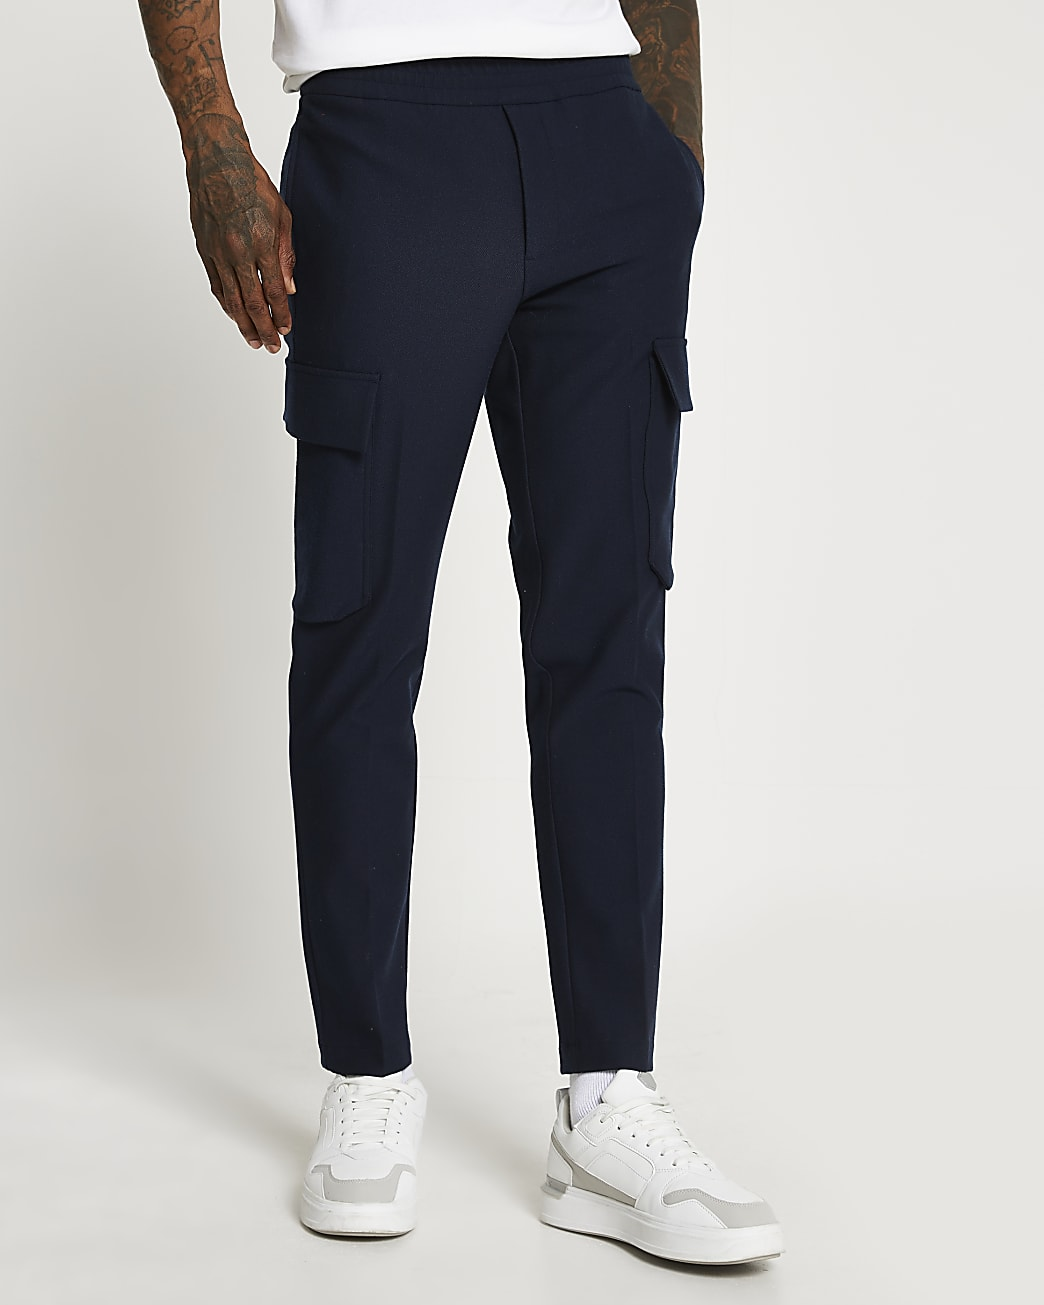 Navy twill cargo trousers